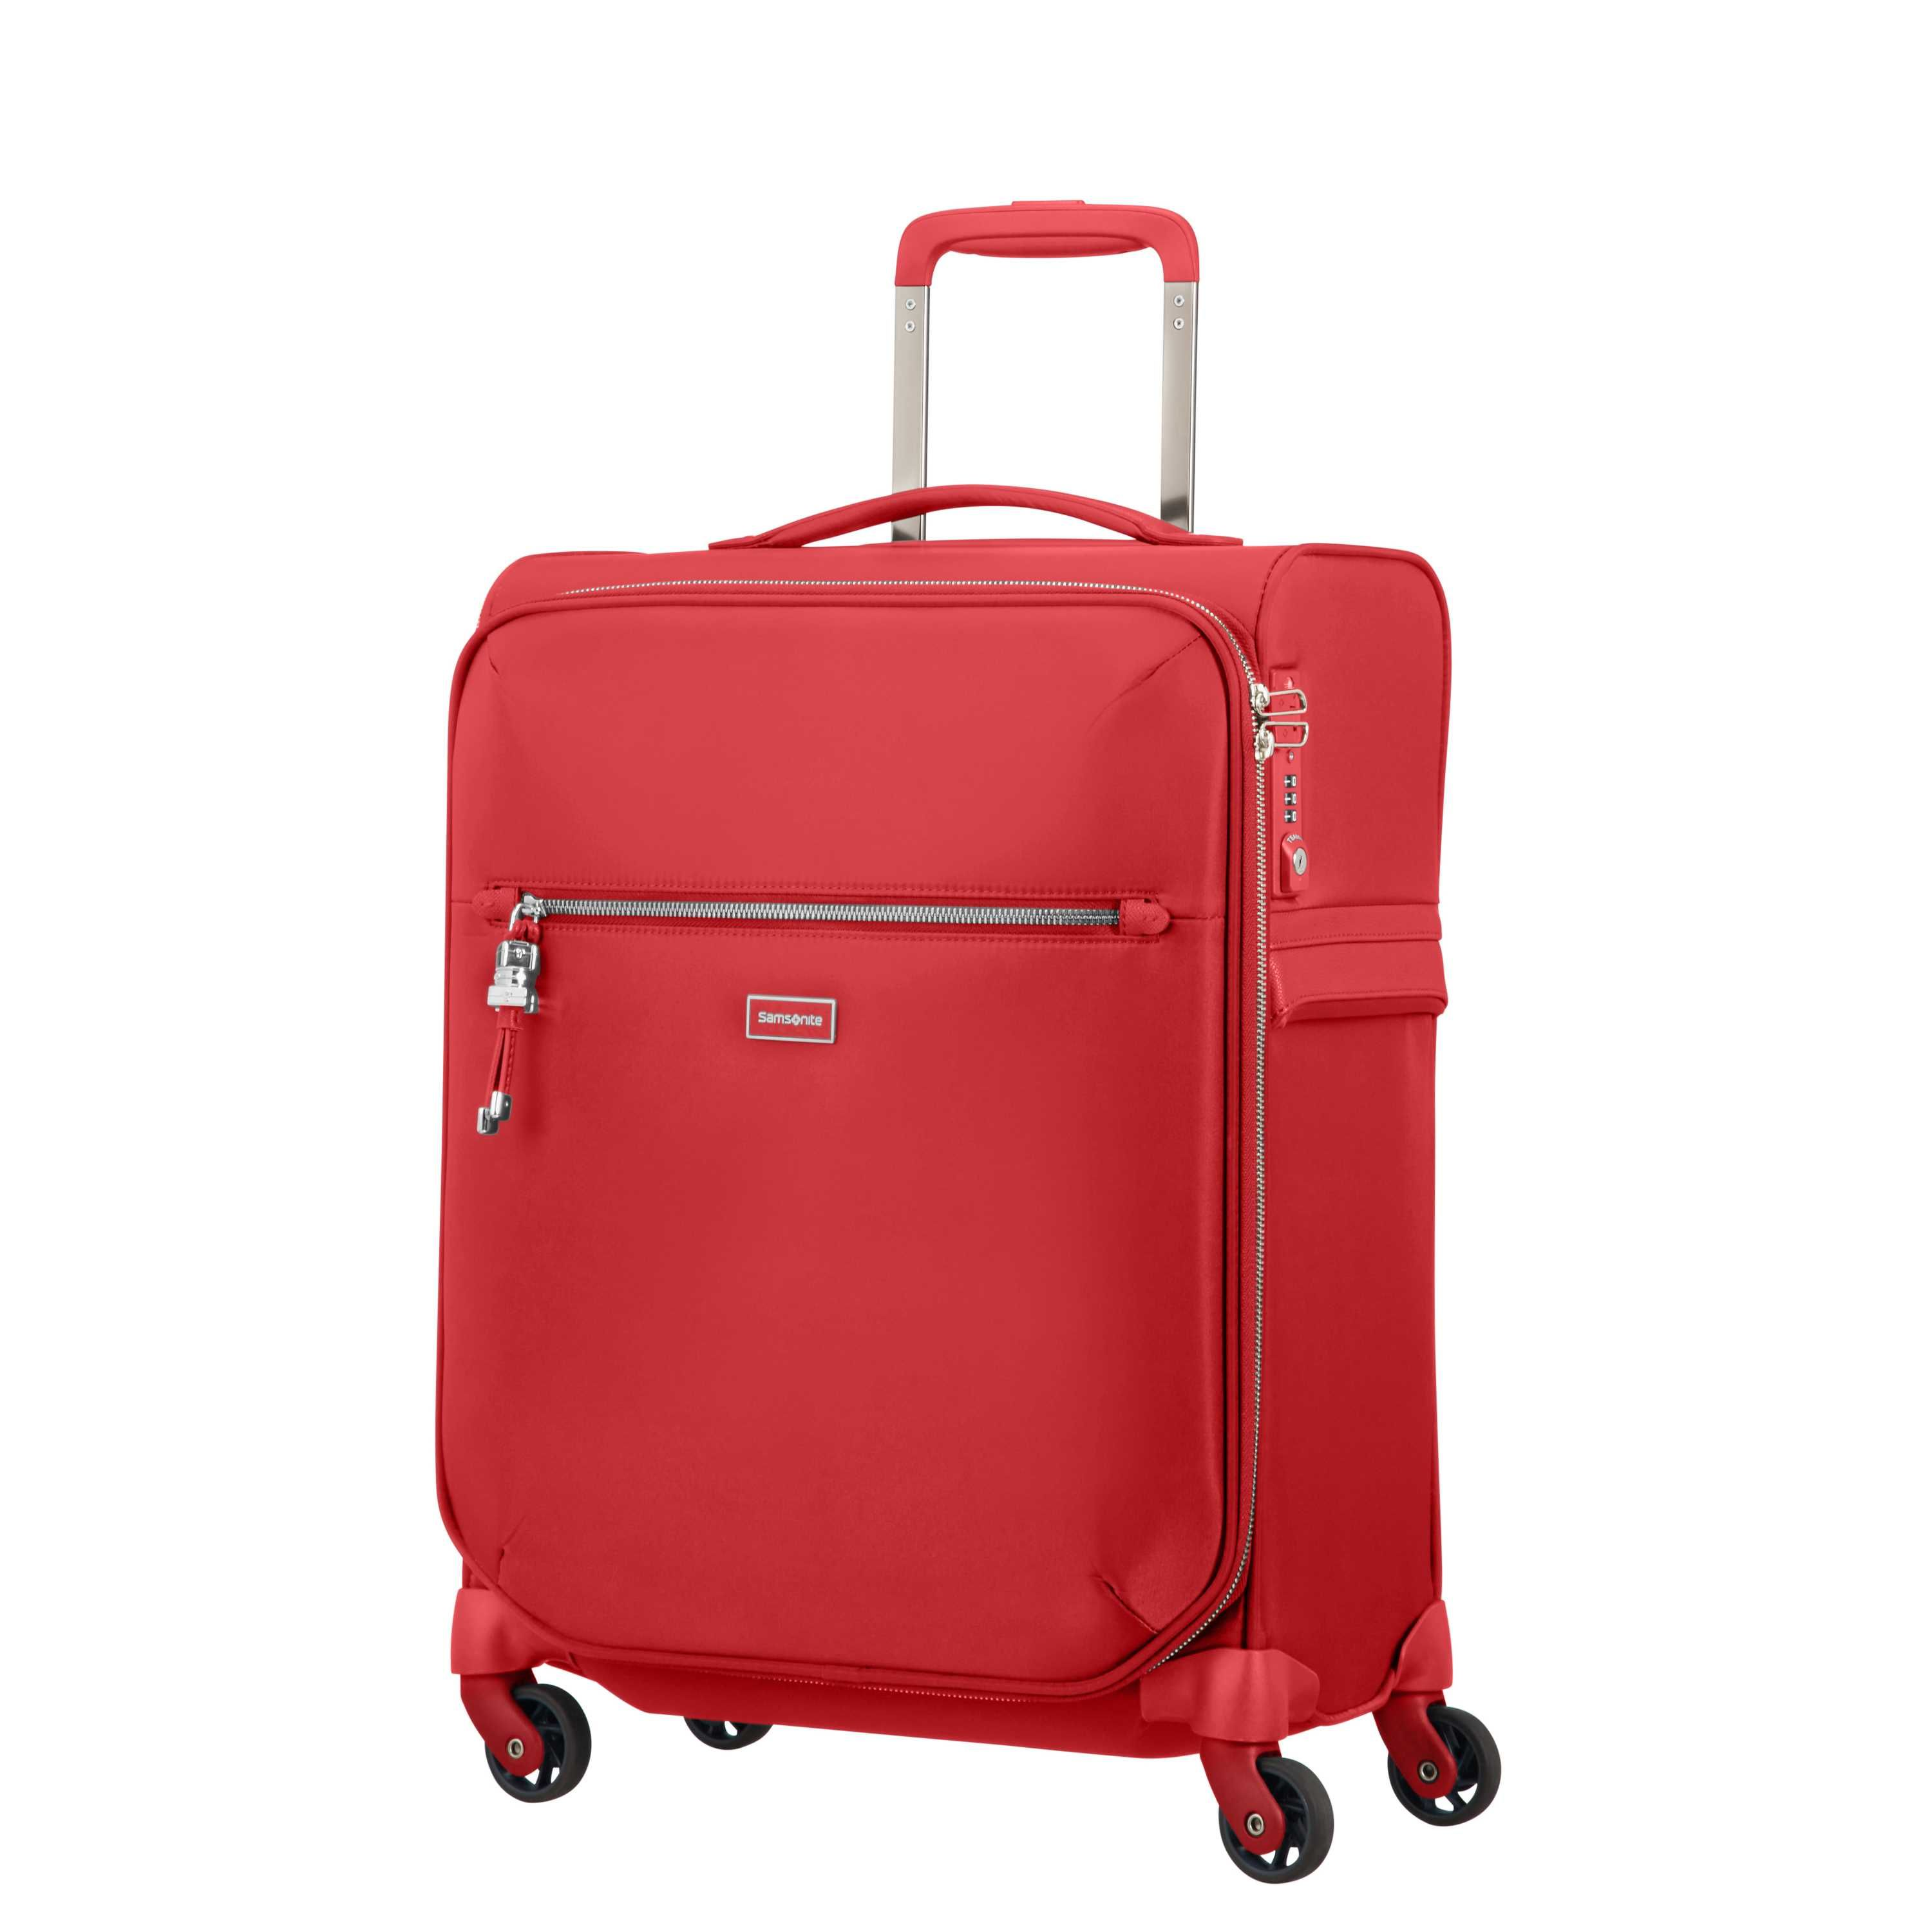 6efb2bcecf Luggage Deals For Black Friday 2018 Suitcases On Sale